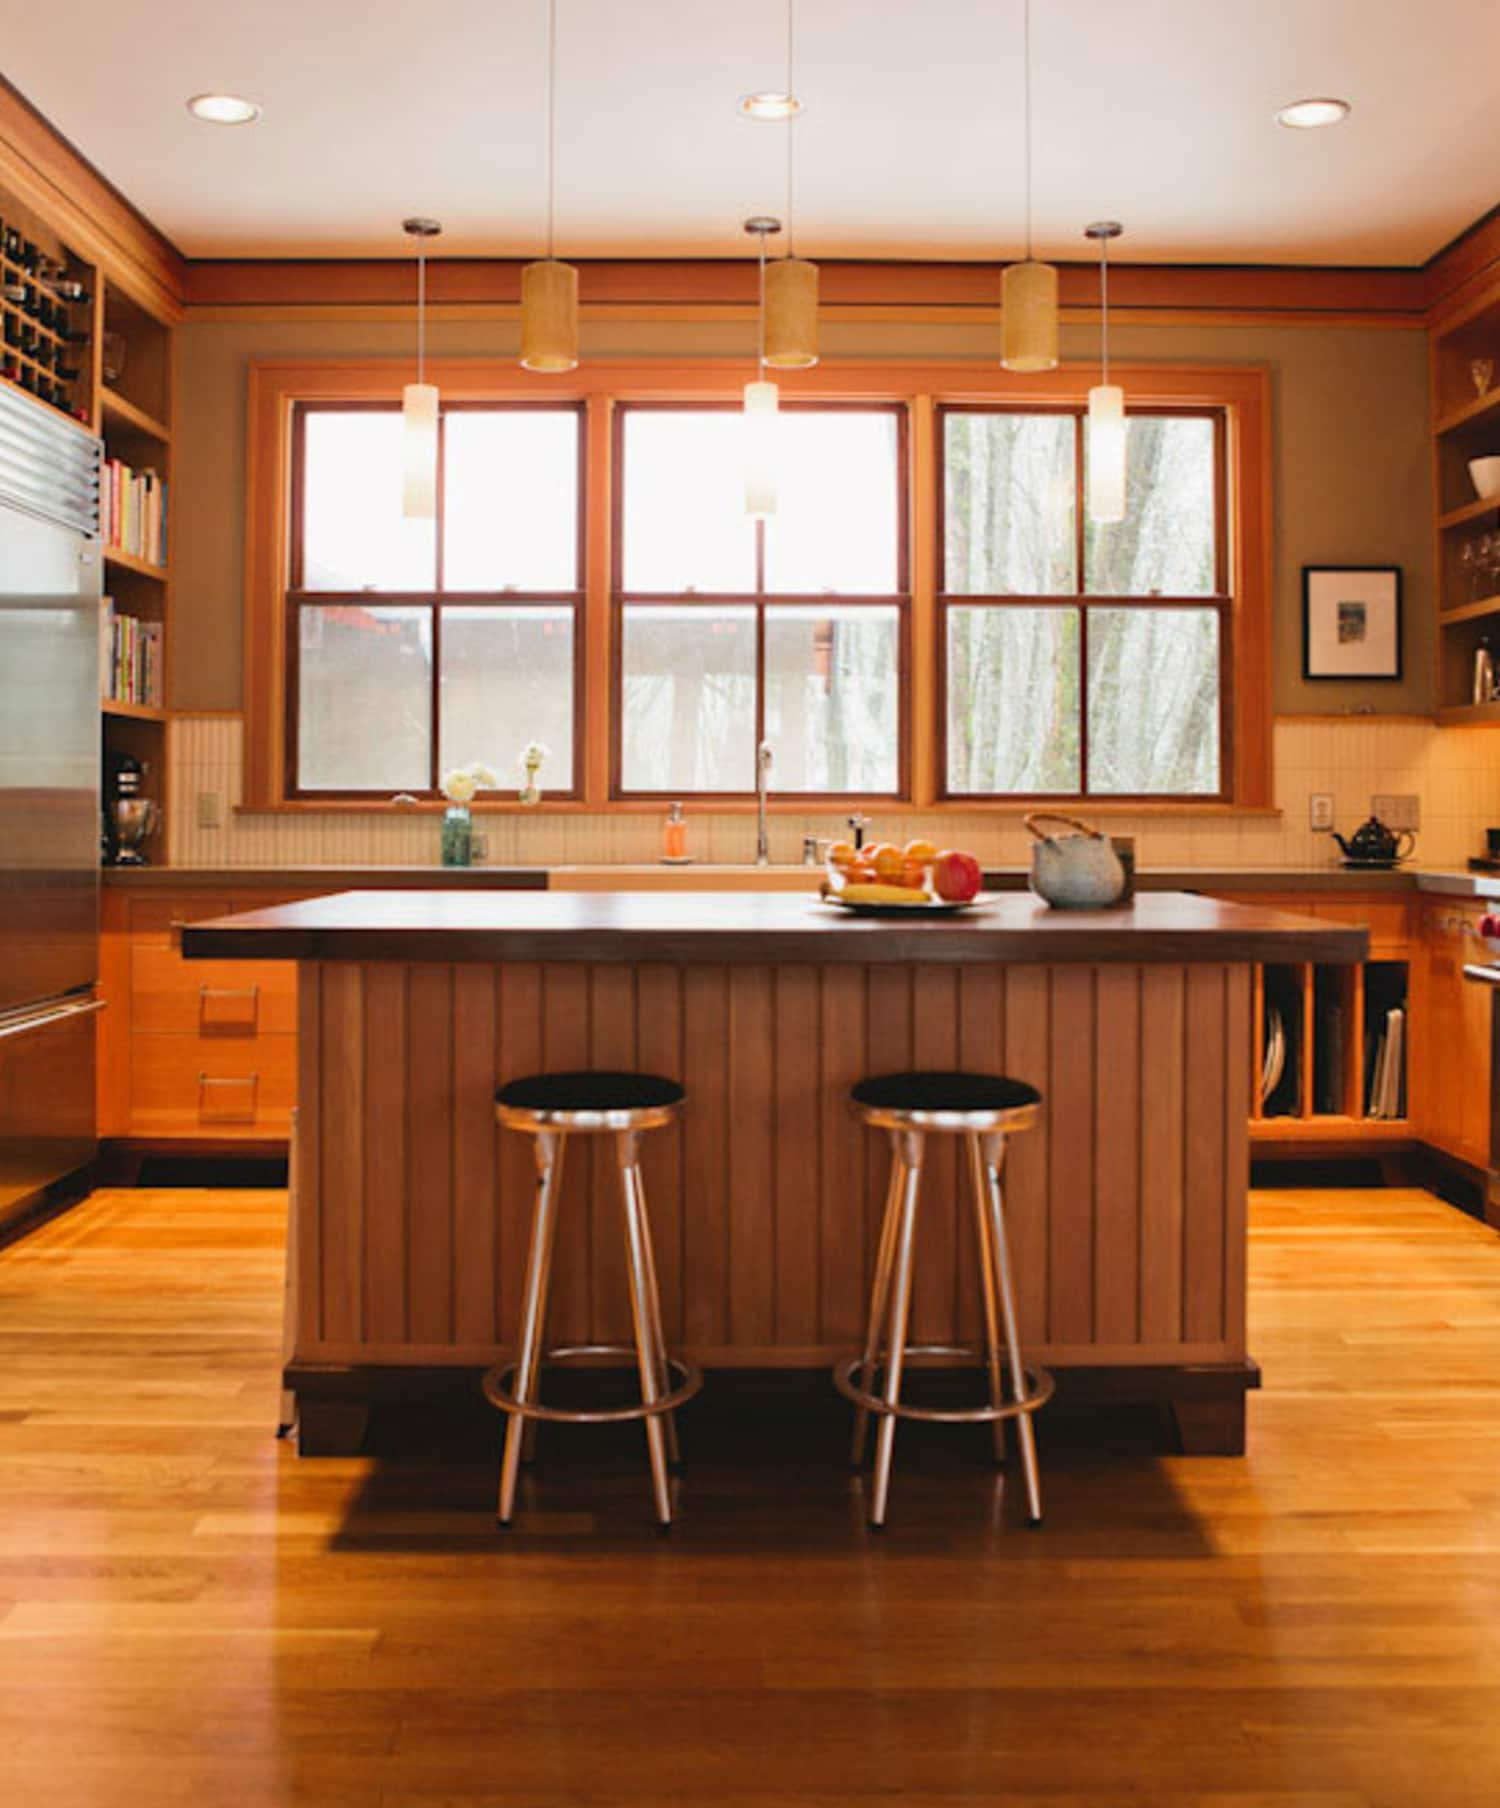 Wood Flooring In Kitchen: All About: Hardwood Flooring